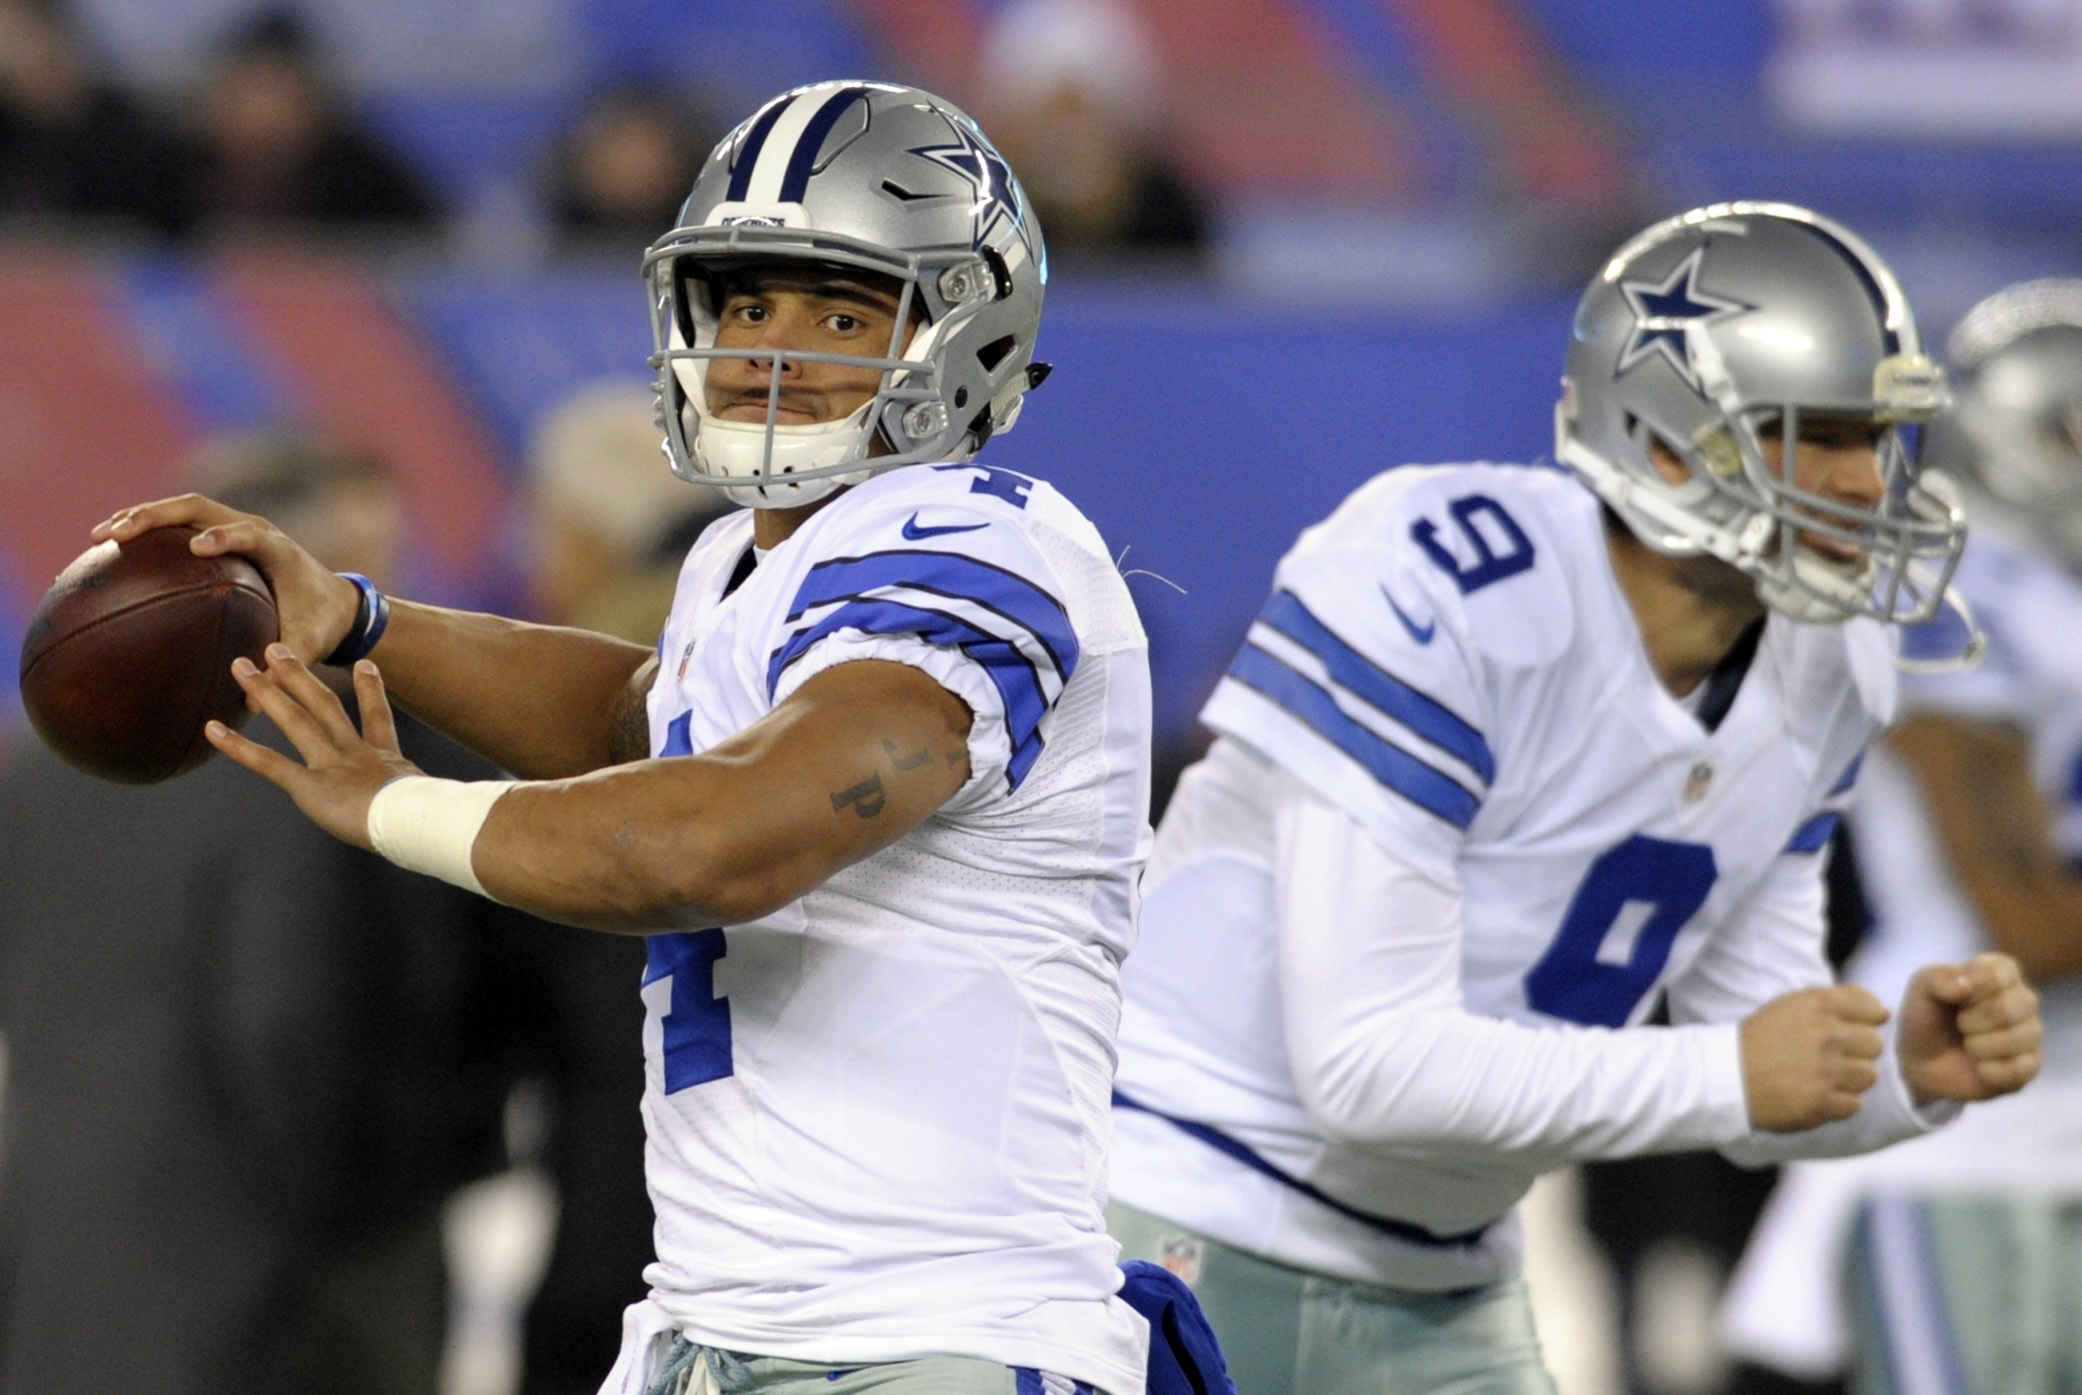 FILE - In this Sunday, Dec. 11, 2016 file photo, Dallas Cowboys quarterback Dak Prescott (4) and Tony Romo (9) warm up before an NFL football game against the New York Giants in East Rutherford, N.J. The Cowboys play the Detroit Lions on Monday, Dec. 26,